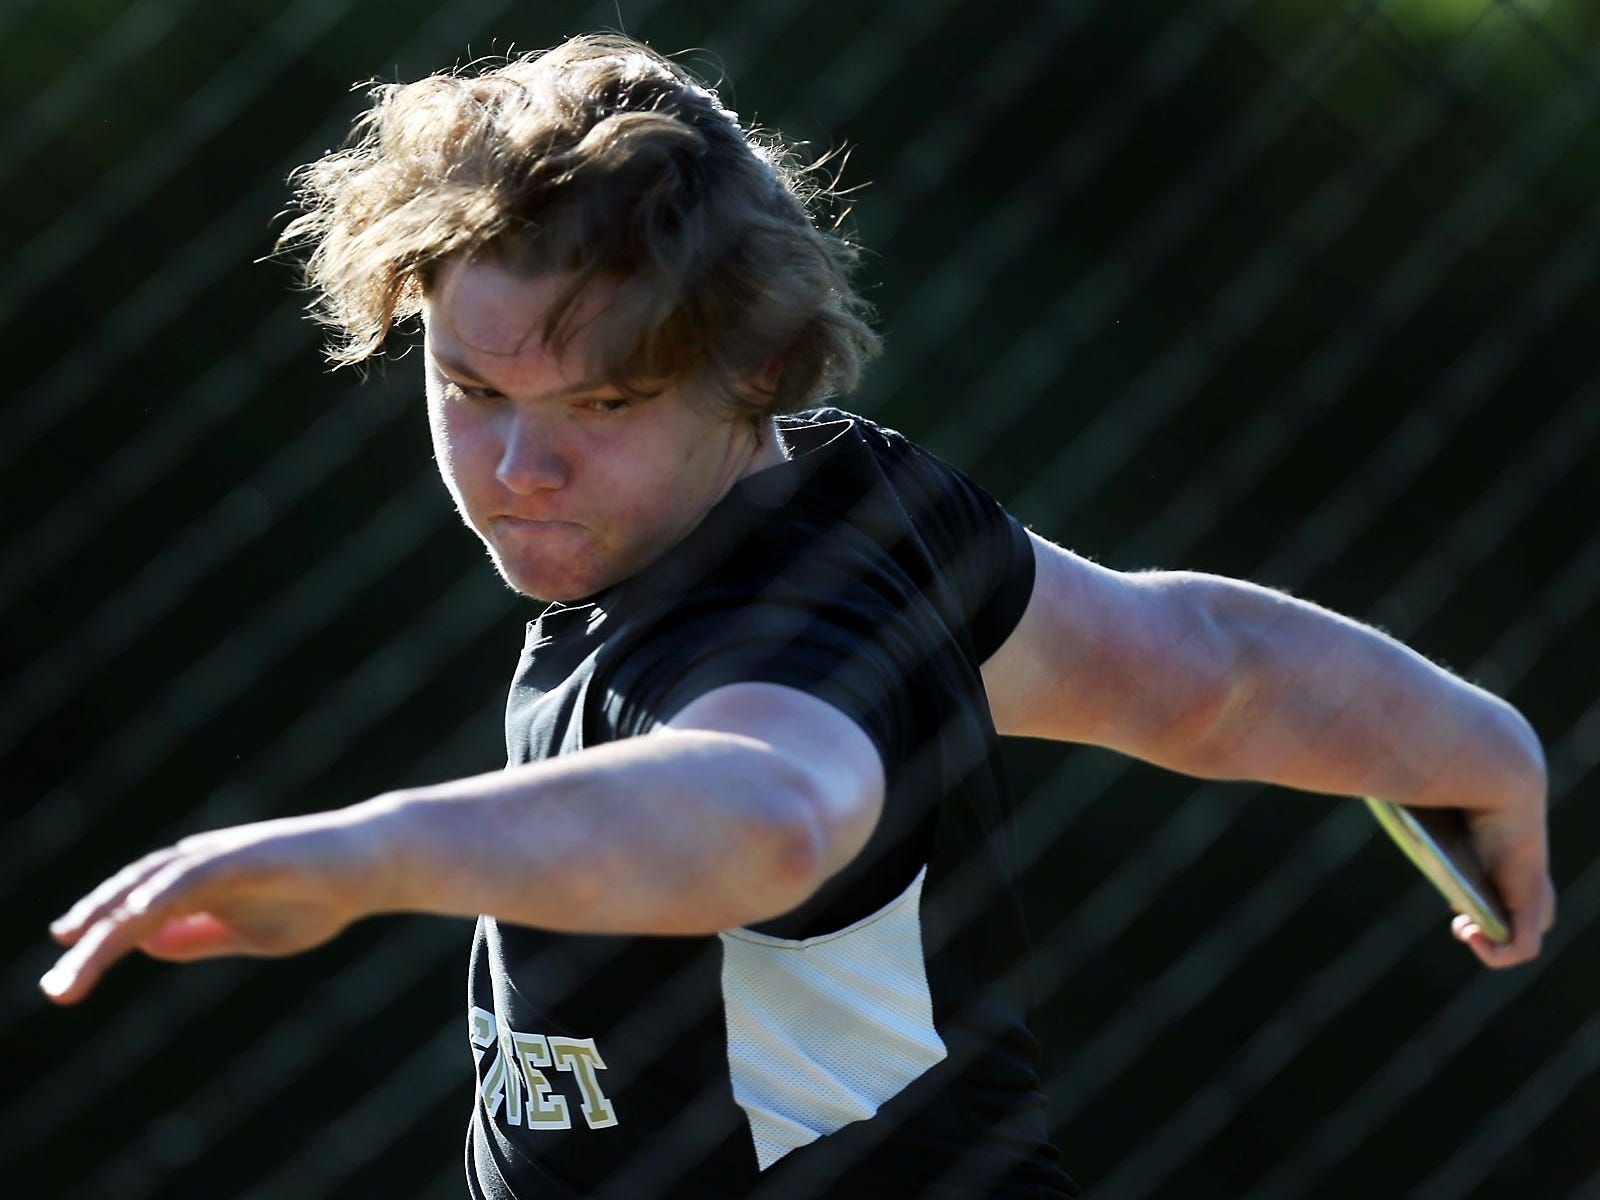 Central Magnet's Hunter Meany competes in the discus on Monday at Riverdale.